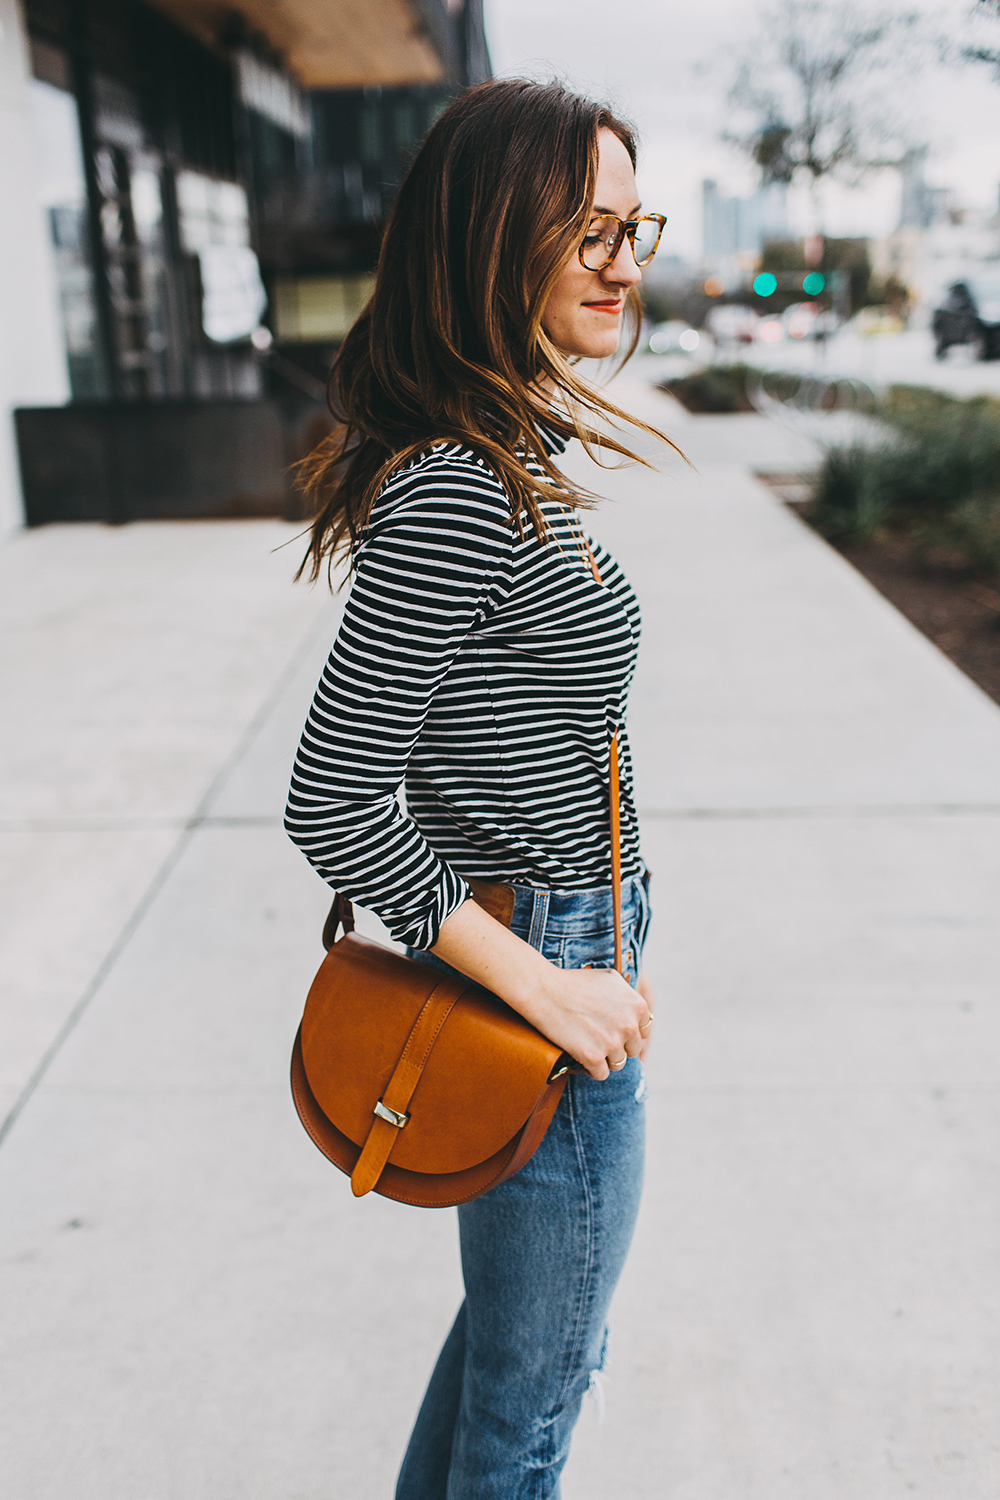 livvyland-blog-olivia-watson-austin-texas-fashion-blogger-j-crew-striped-turtleneck-outfit-idea-inspiration-5